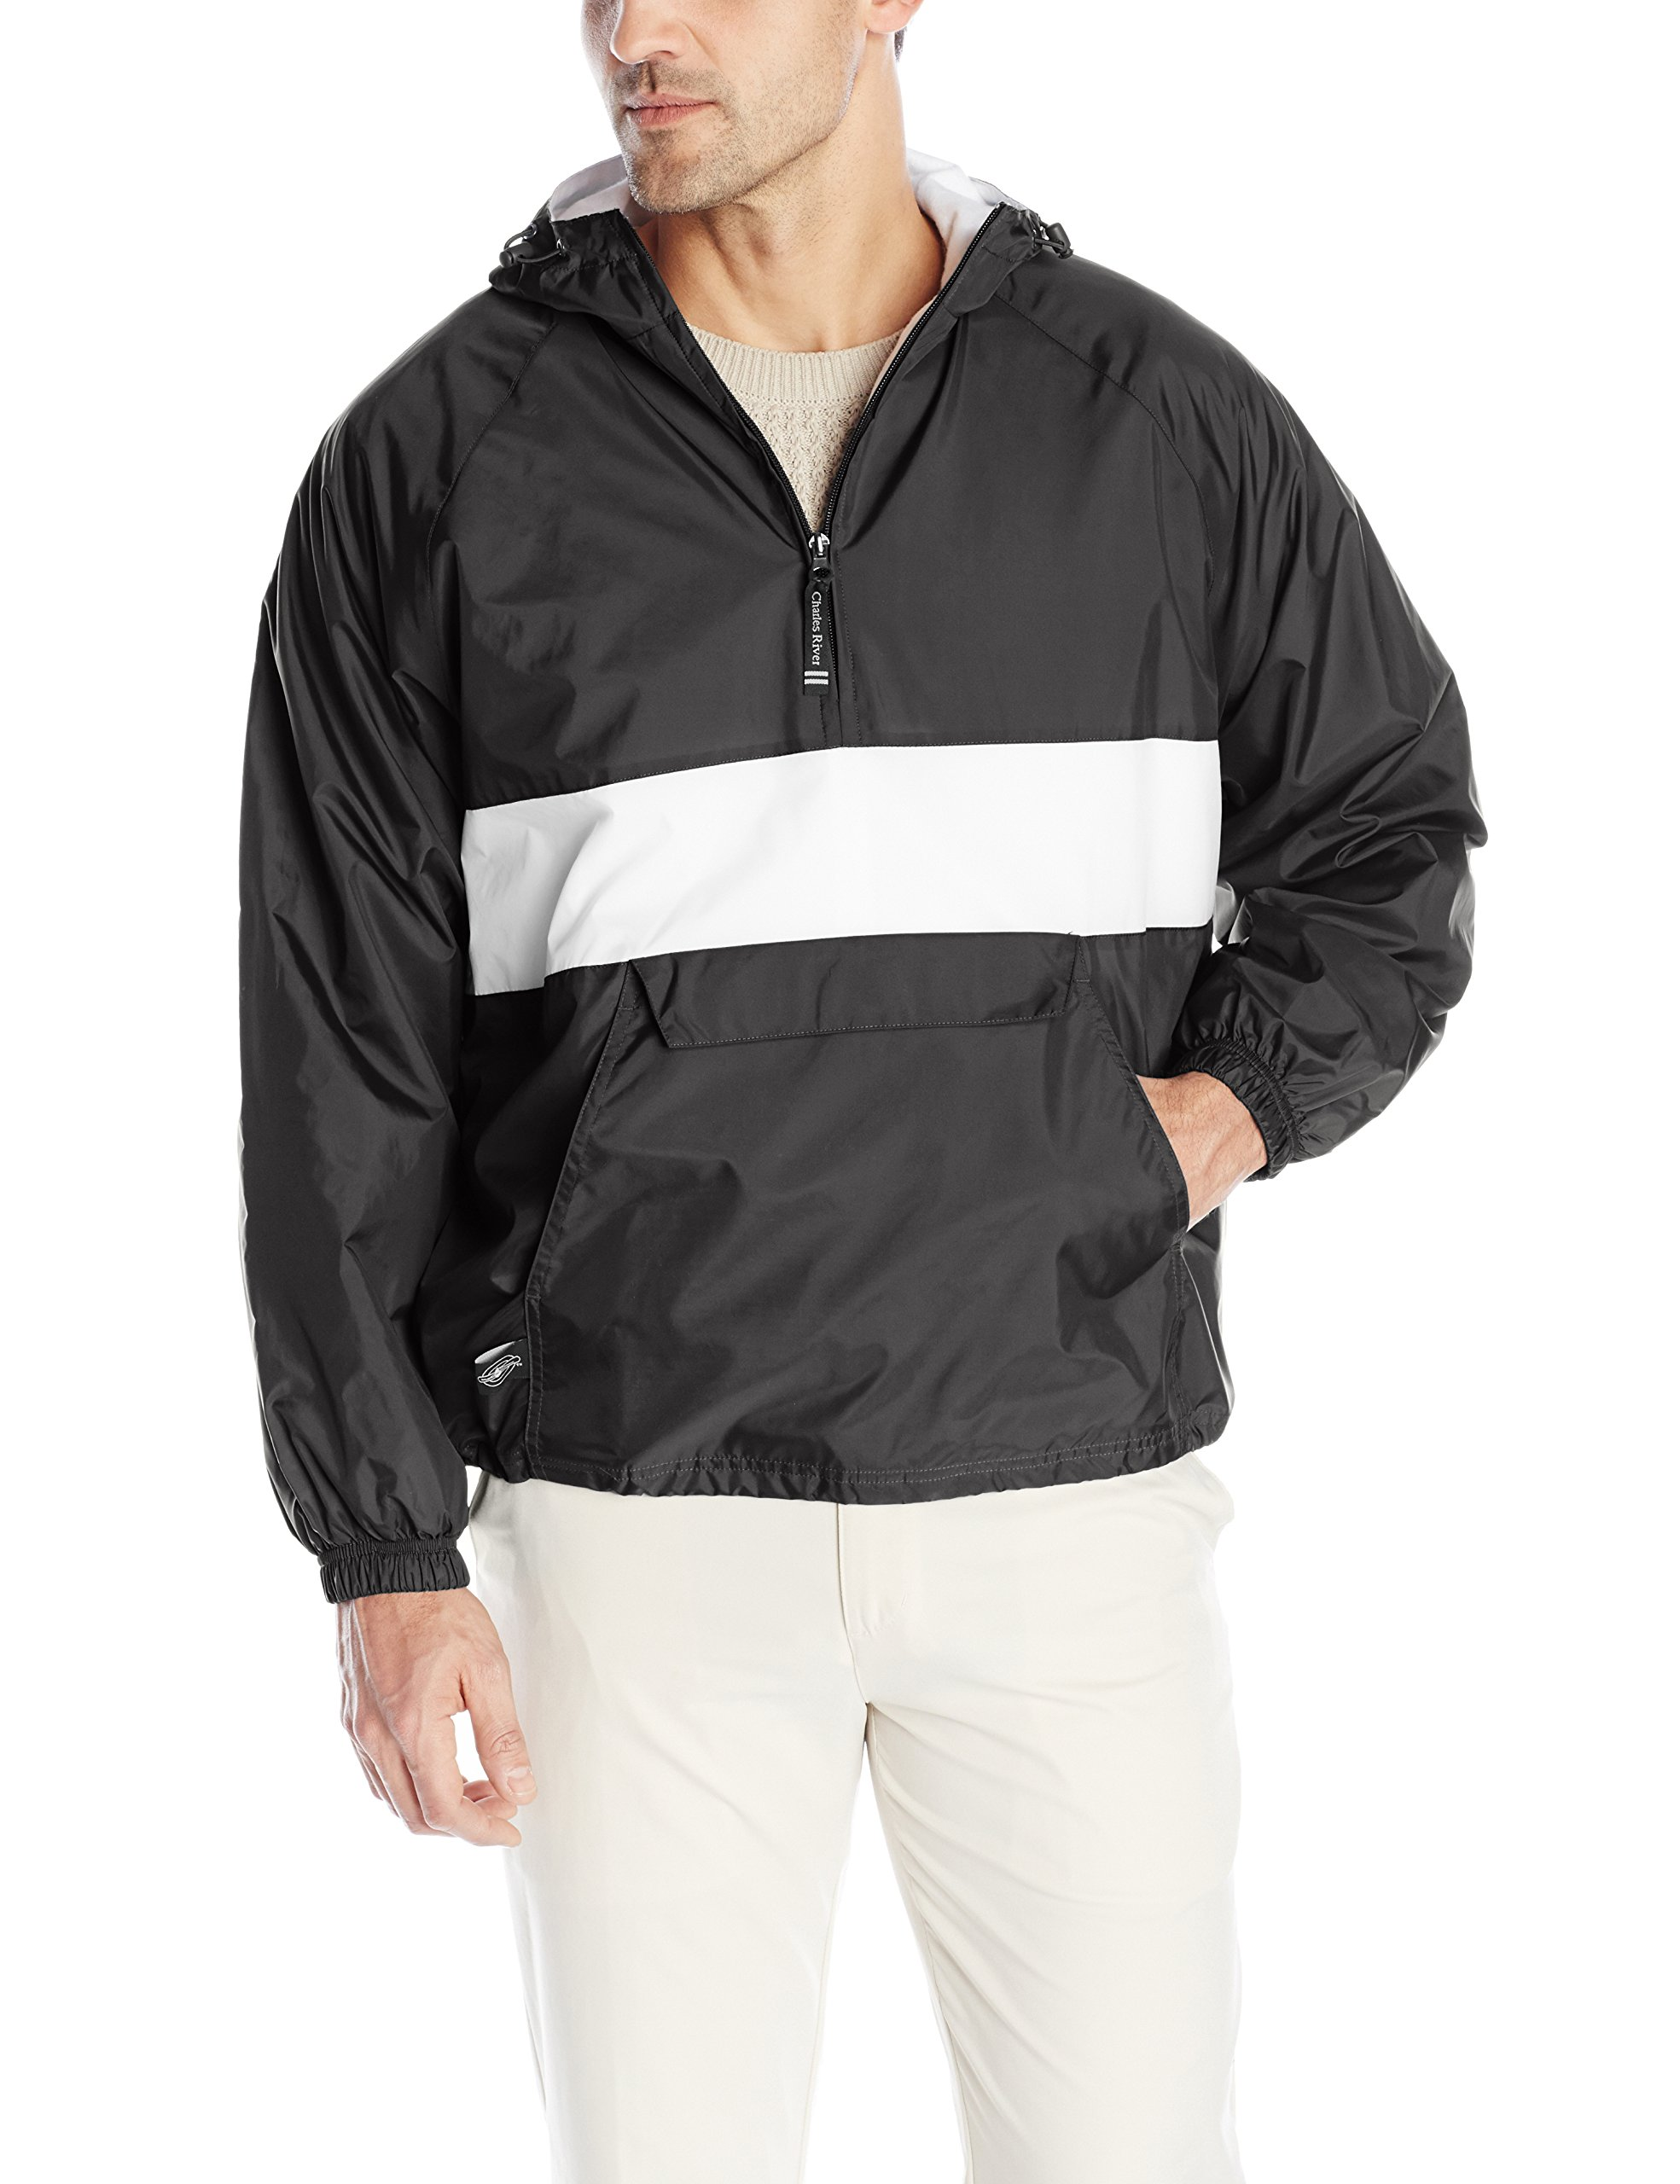 Charles River Apparel Men's Classic Striped Pullover Jacket, Black/White, Medium